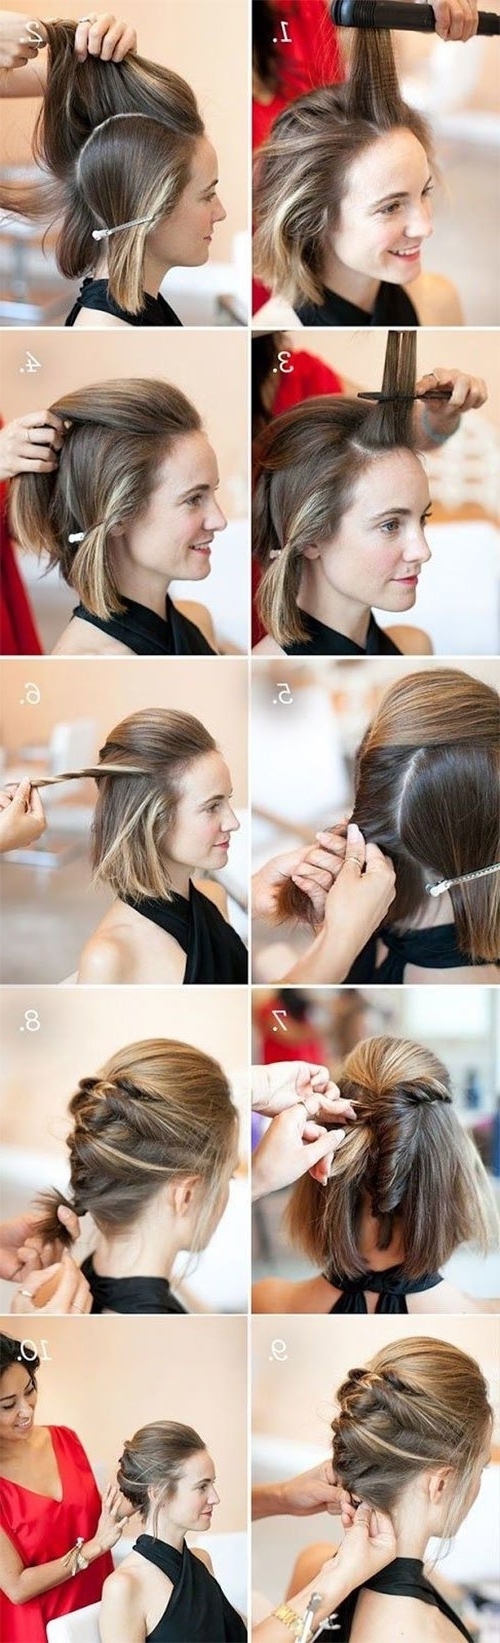 Well Known Quick Wedding Hairstyles For Short Hair With Short Hair Updos, How To Style Bobs, Lobs Tutorials (View 13 of 15)